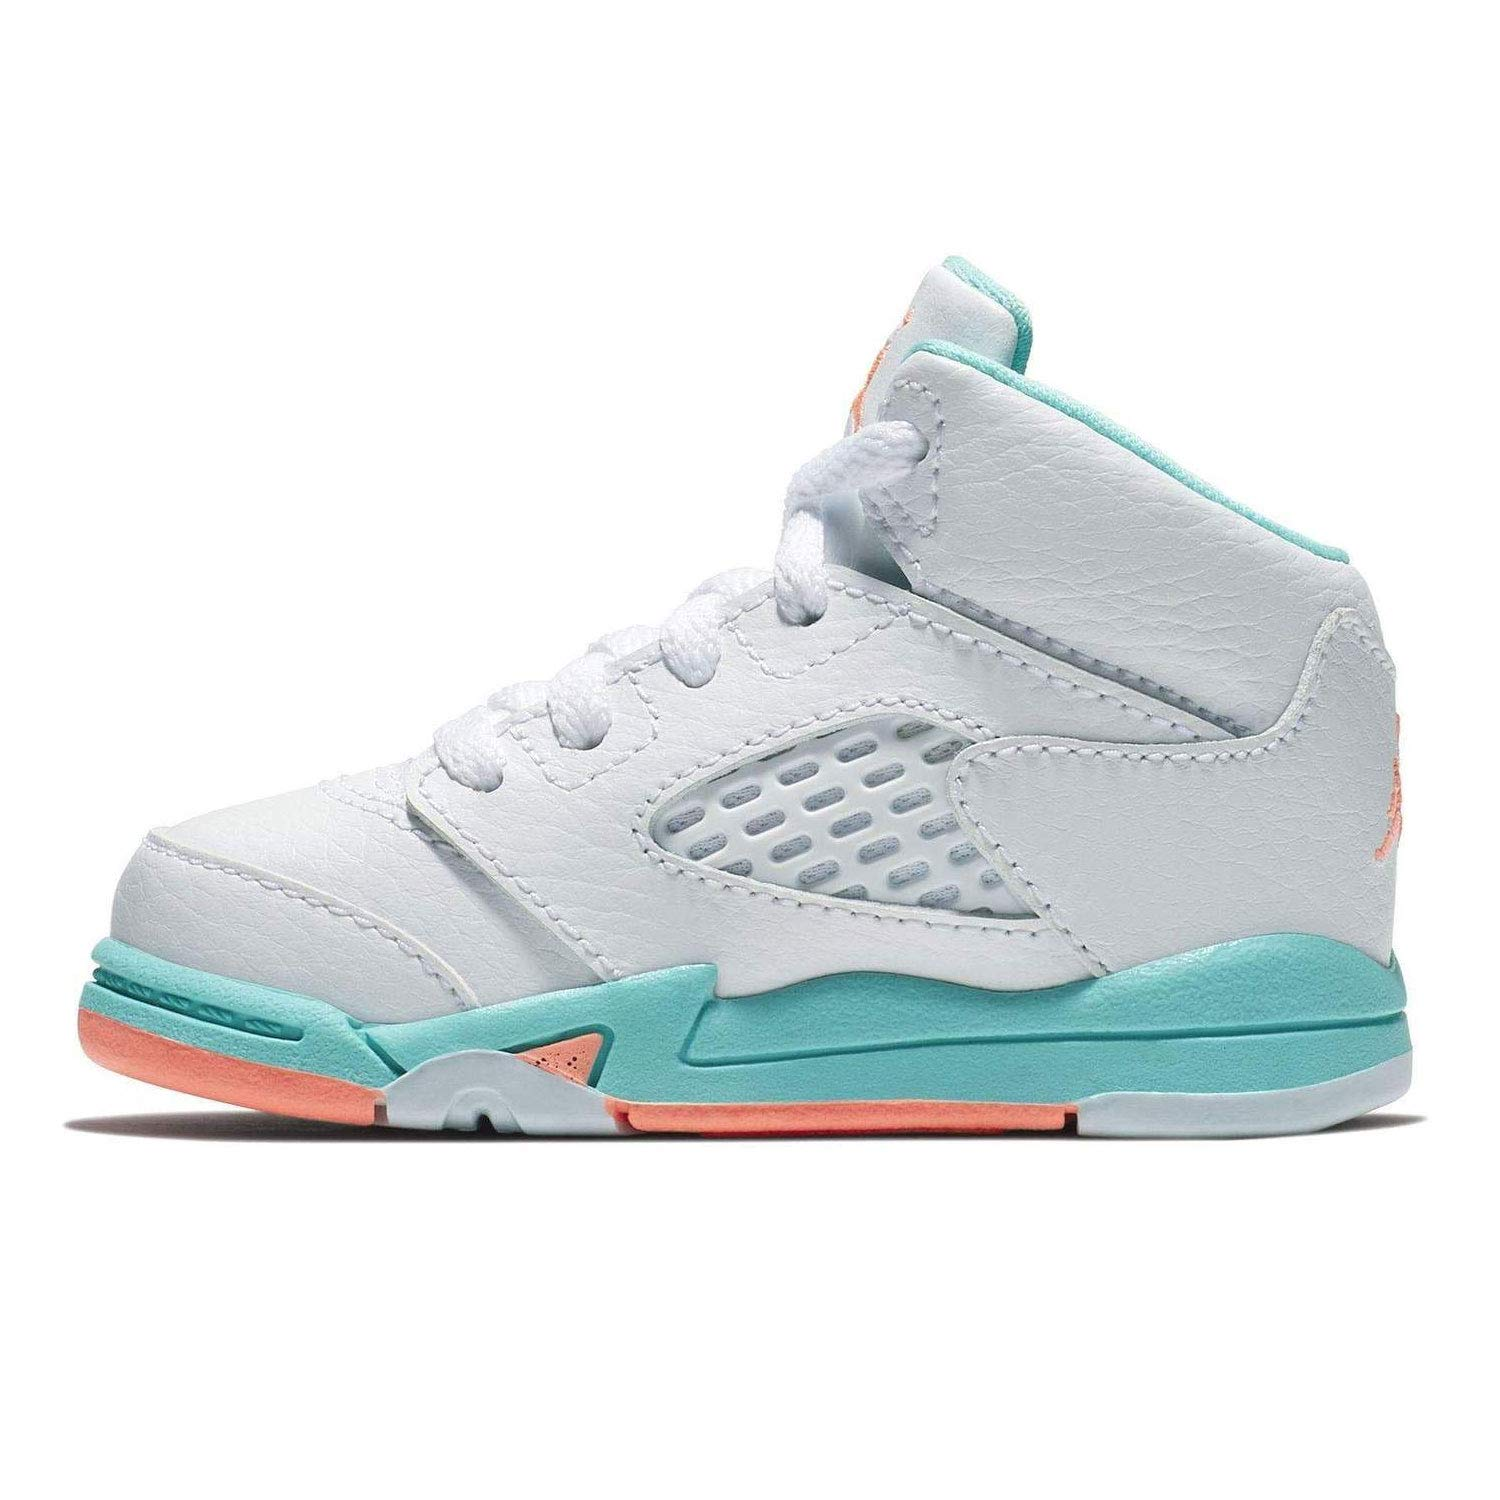 e0a8bc7a189f Amazon.com  Nike Jordan 5 Retro (td) Toddler 725172-100  Shoes